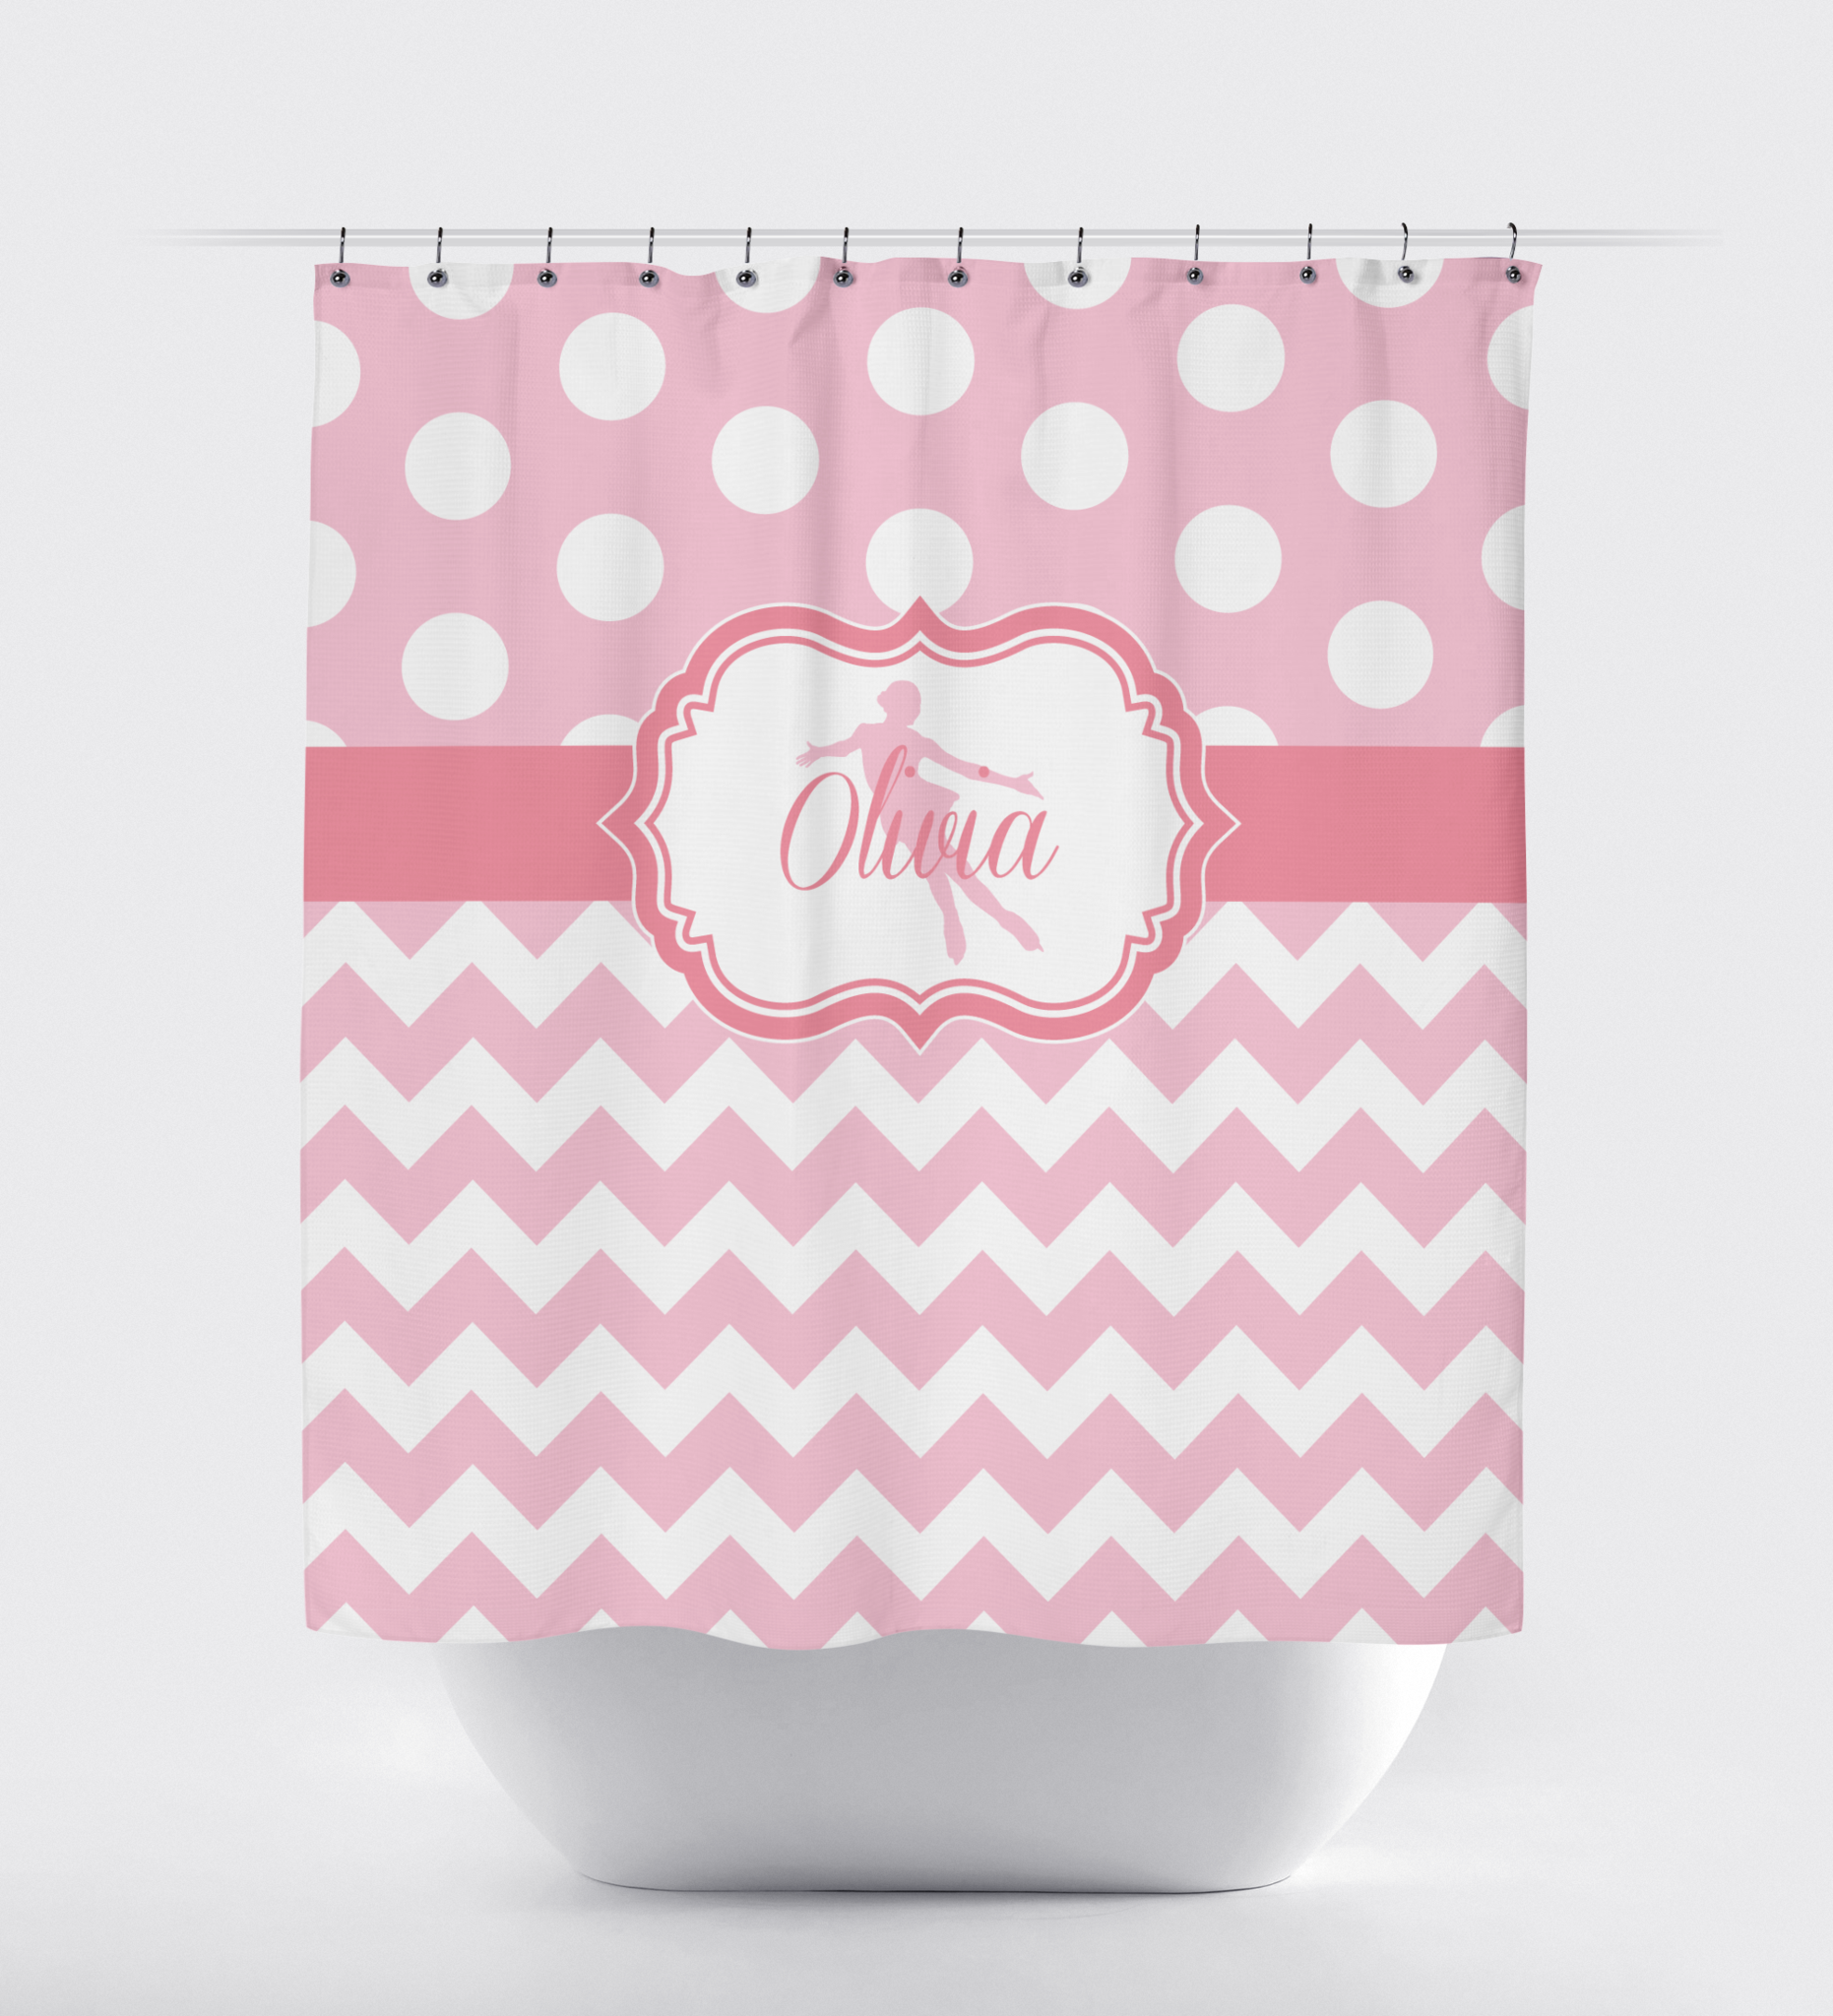 Light pink shower curtain -  Custom Figure Skating Shower Curtain With Polka Dots And Chevron Zig Zag Stripes Custom